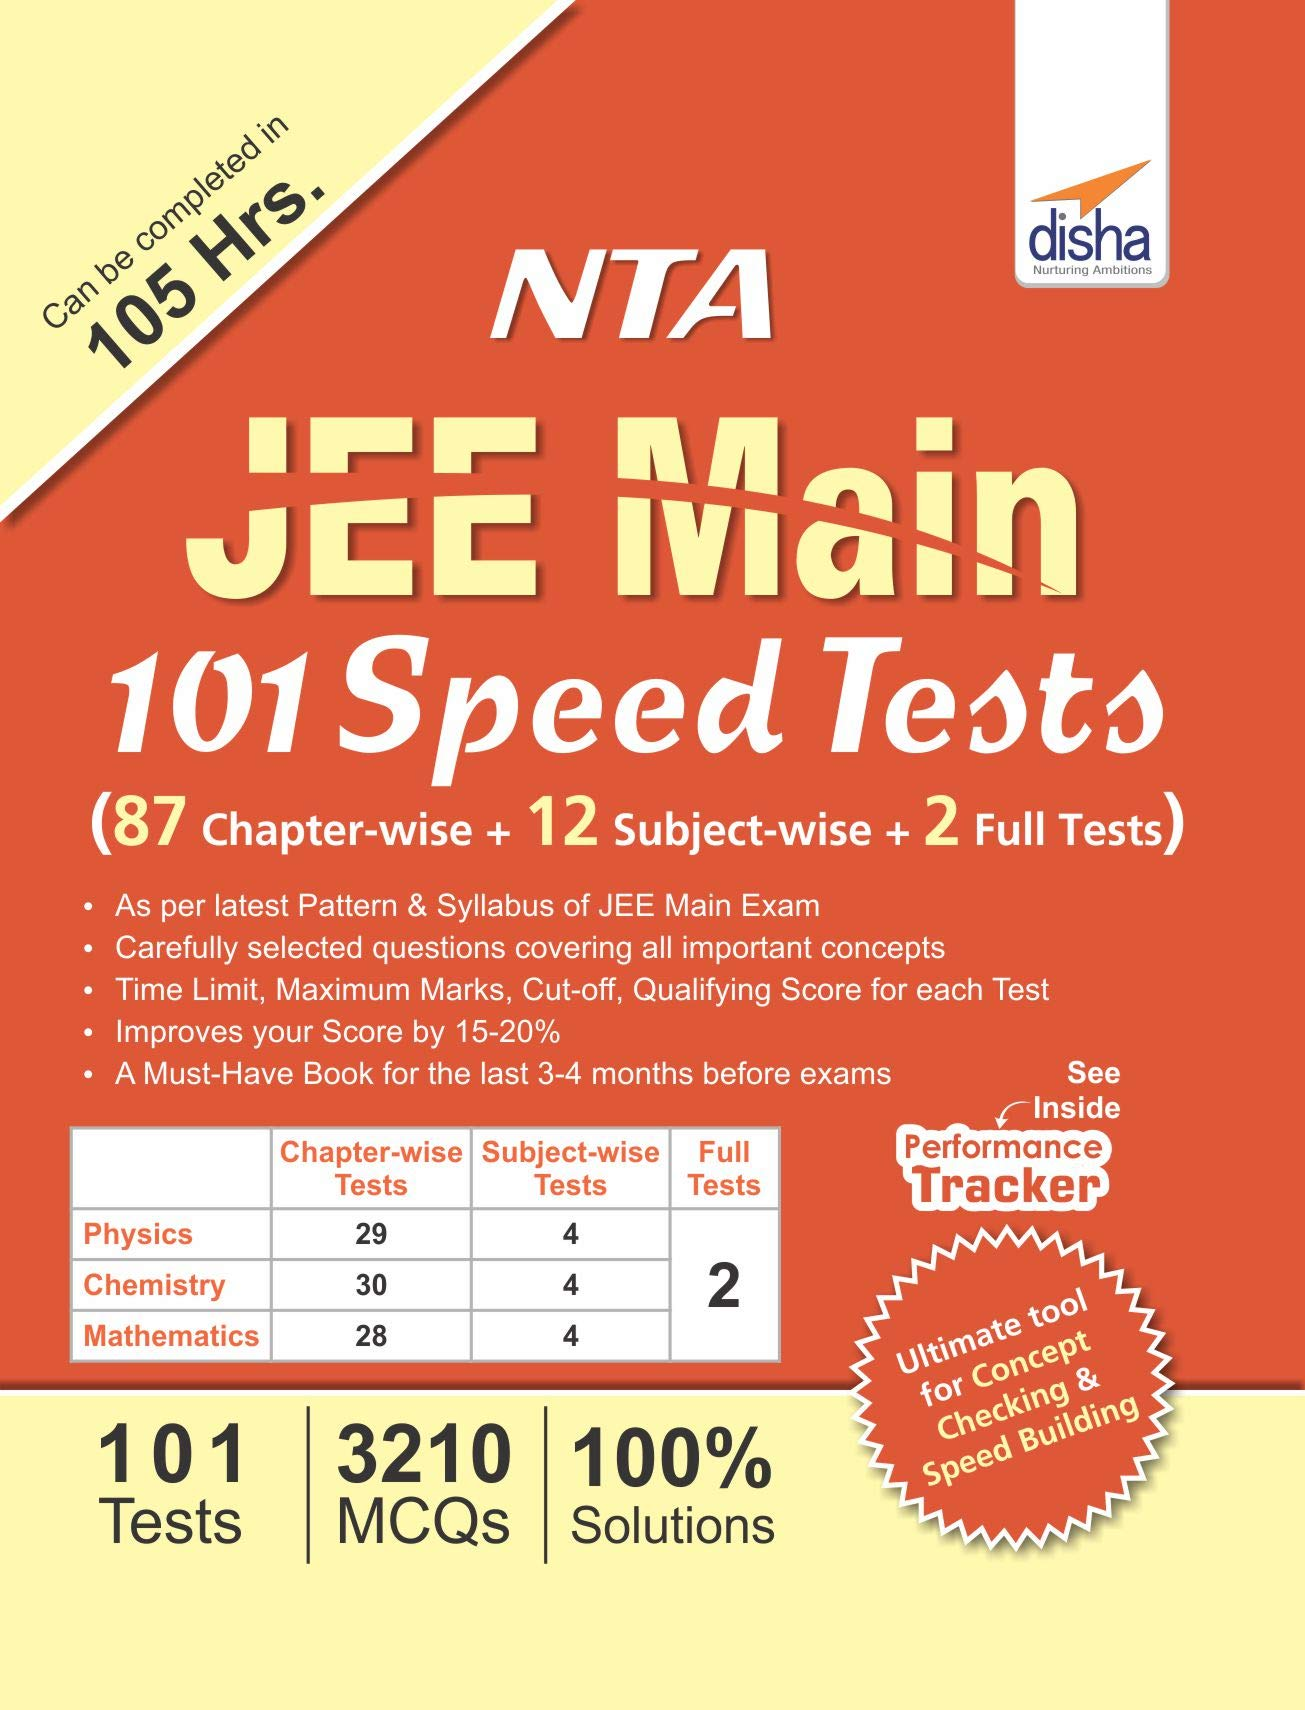 Buy NTA JEE Main 101 Speed Tests (87 Chapter-wise + 12